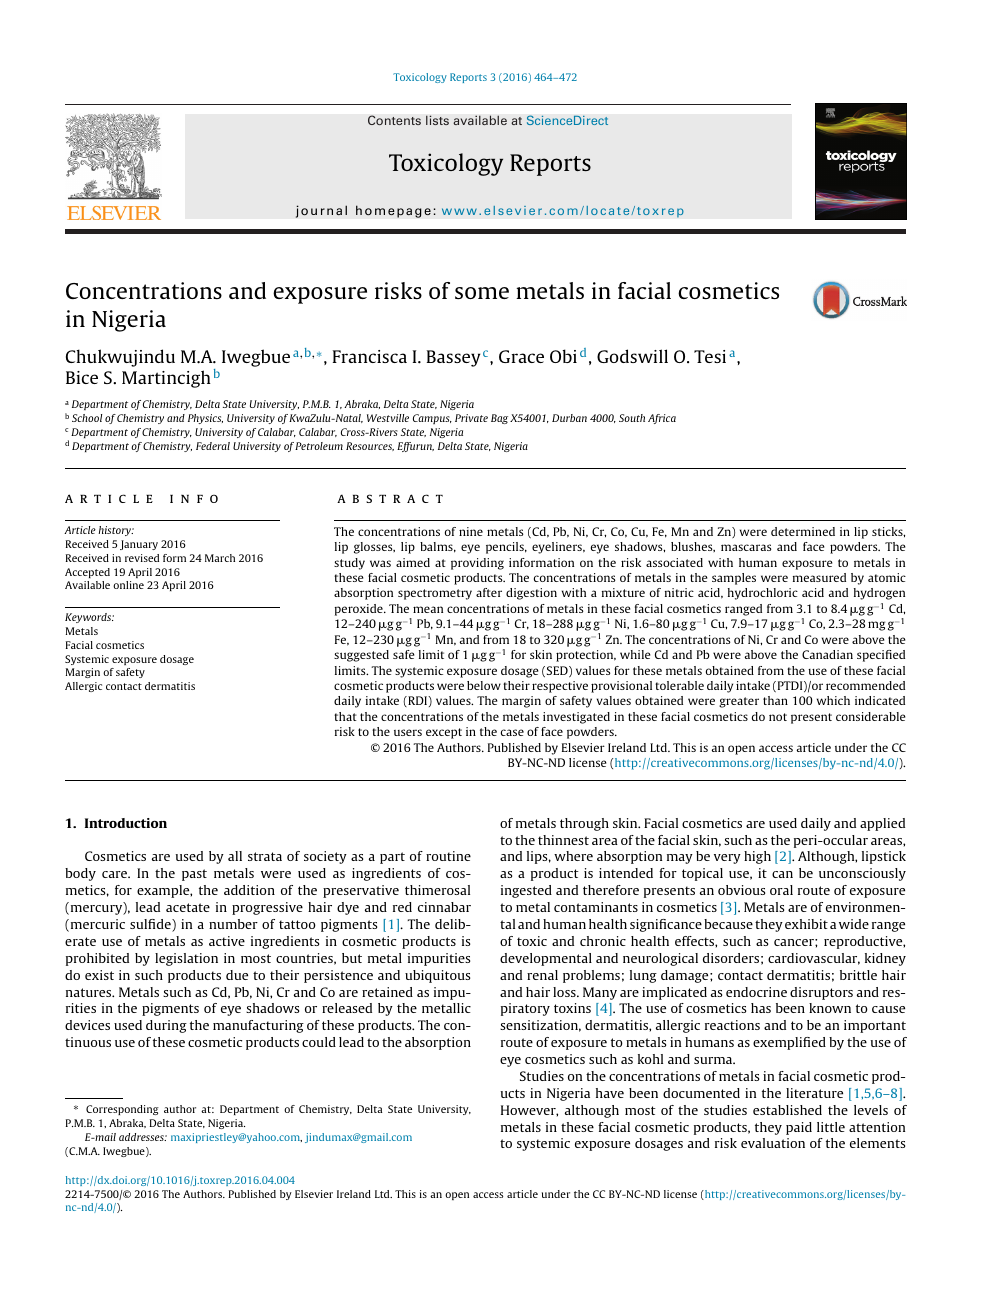 Concentrations and exposure risks of some metals in facial cosmetics